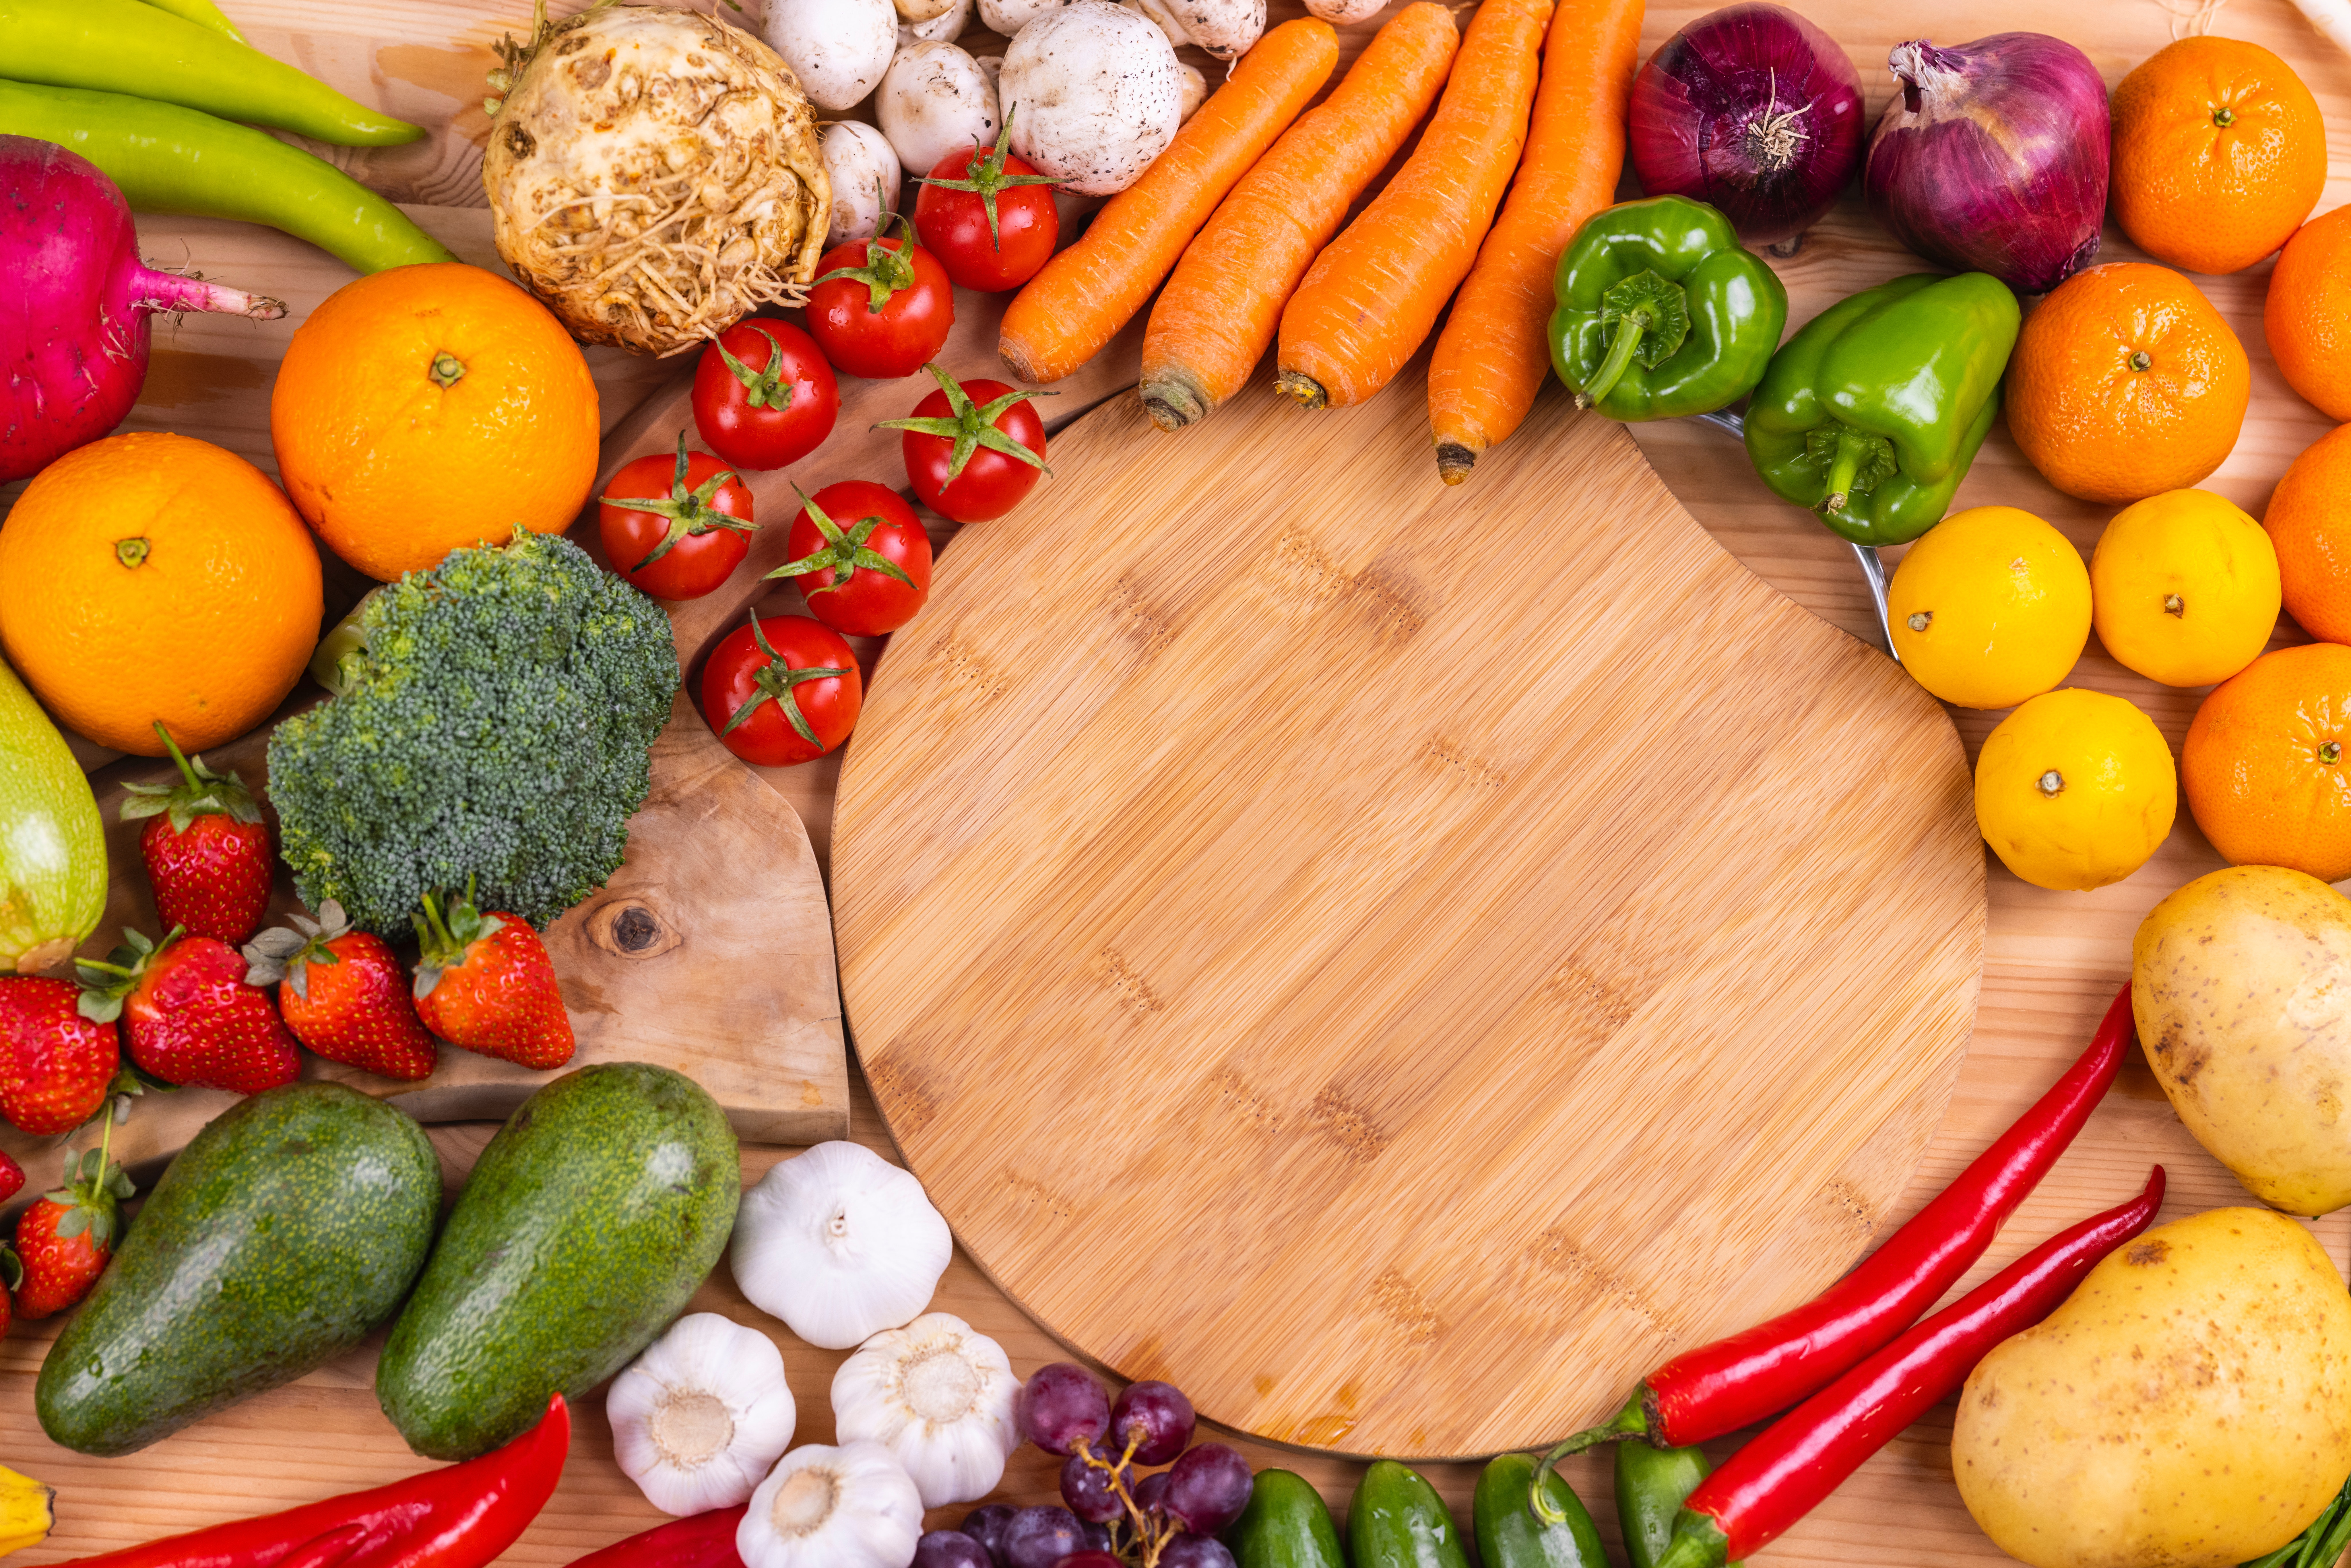 Foods that can help reduce the risk of heart disease